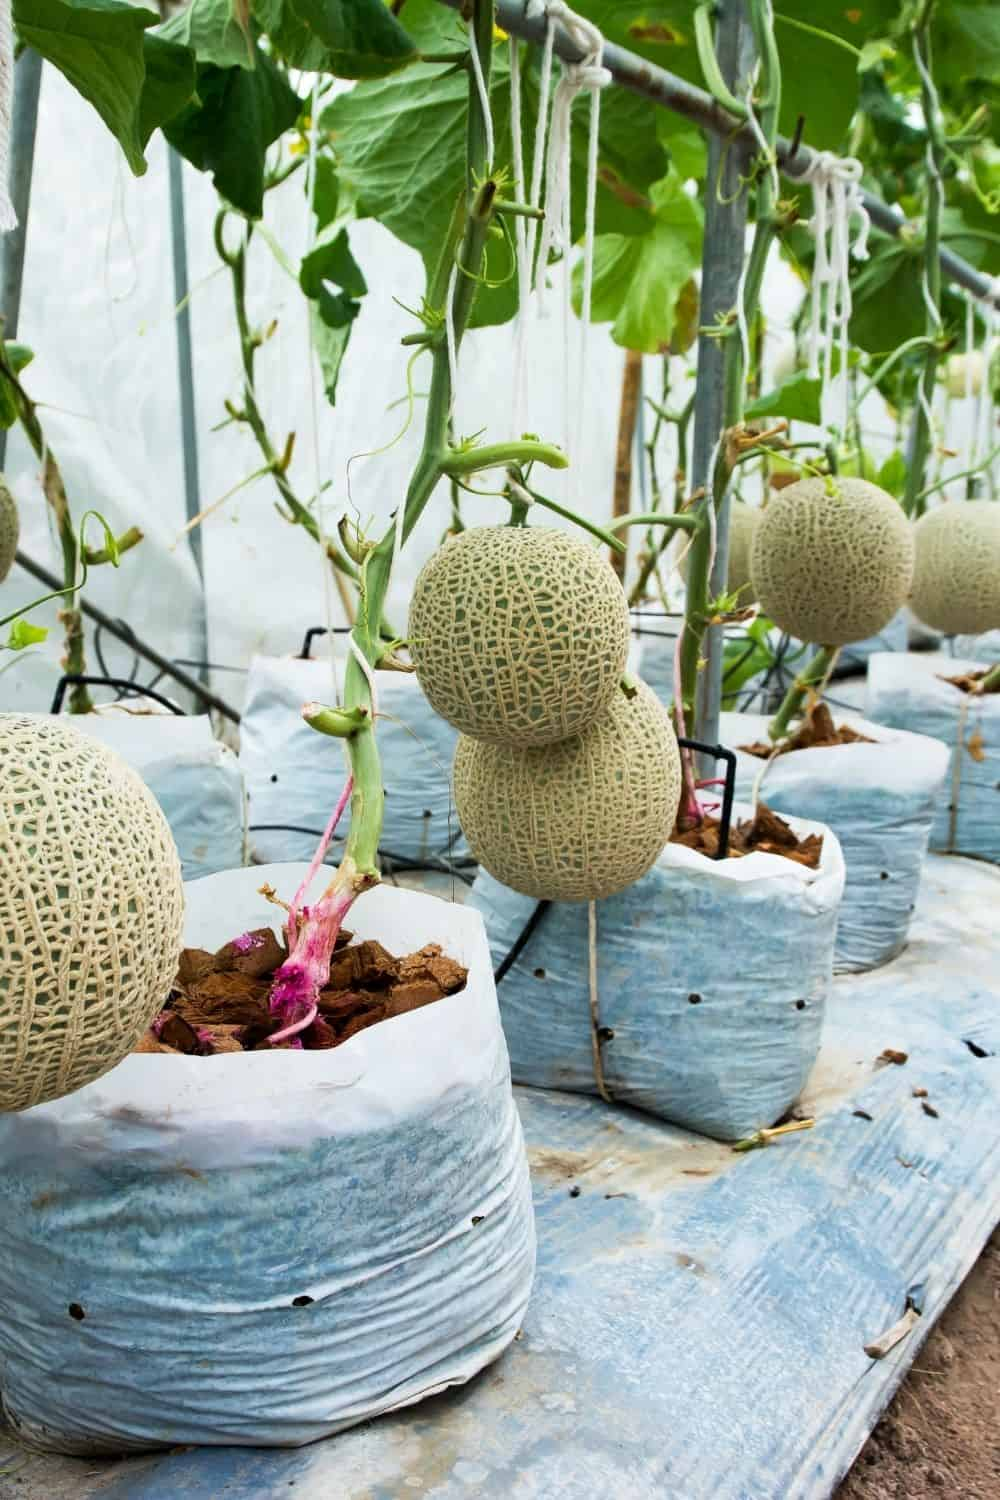 Cantaloupes trained to grow vertically